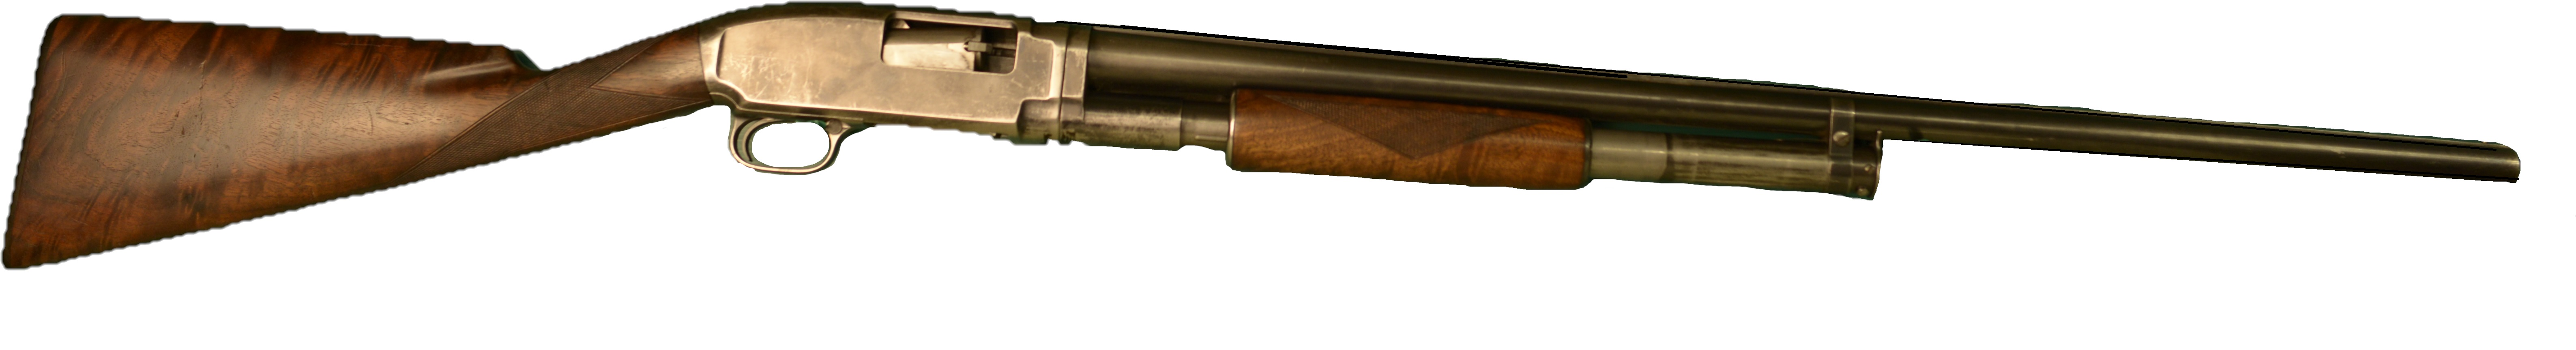 WINCHESTER MODEL 12 12 GAUGE SHOTGUN NN10389